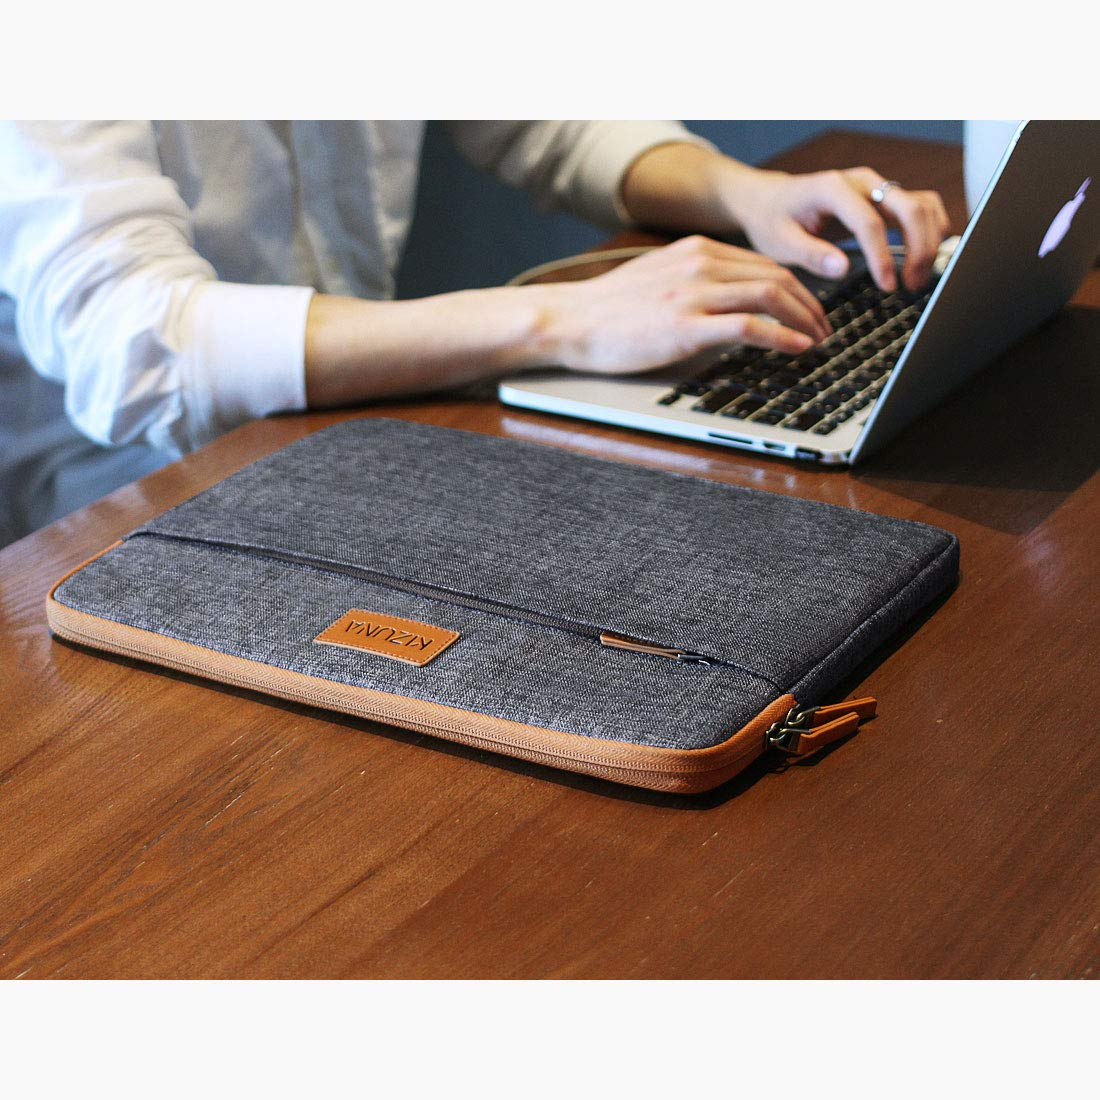 KIZUNA Laptop Sleeve 11 Inch Water-Resistant Shockproof Notebook Case Portable Carrying Bag for 11.6 Computer//MacBook Air//12.9 ipad pro 2018//Surface Pro//100e Chromebook//Acer Spin 11//Huawei MateBook E